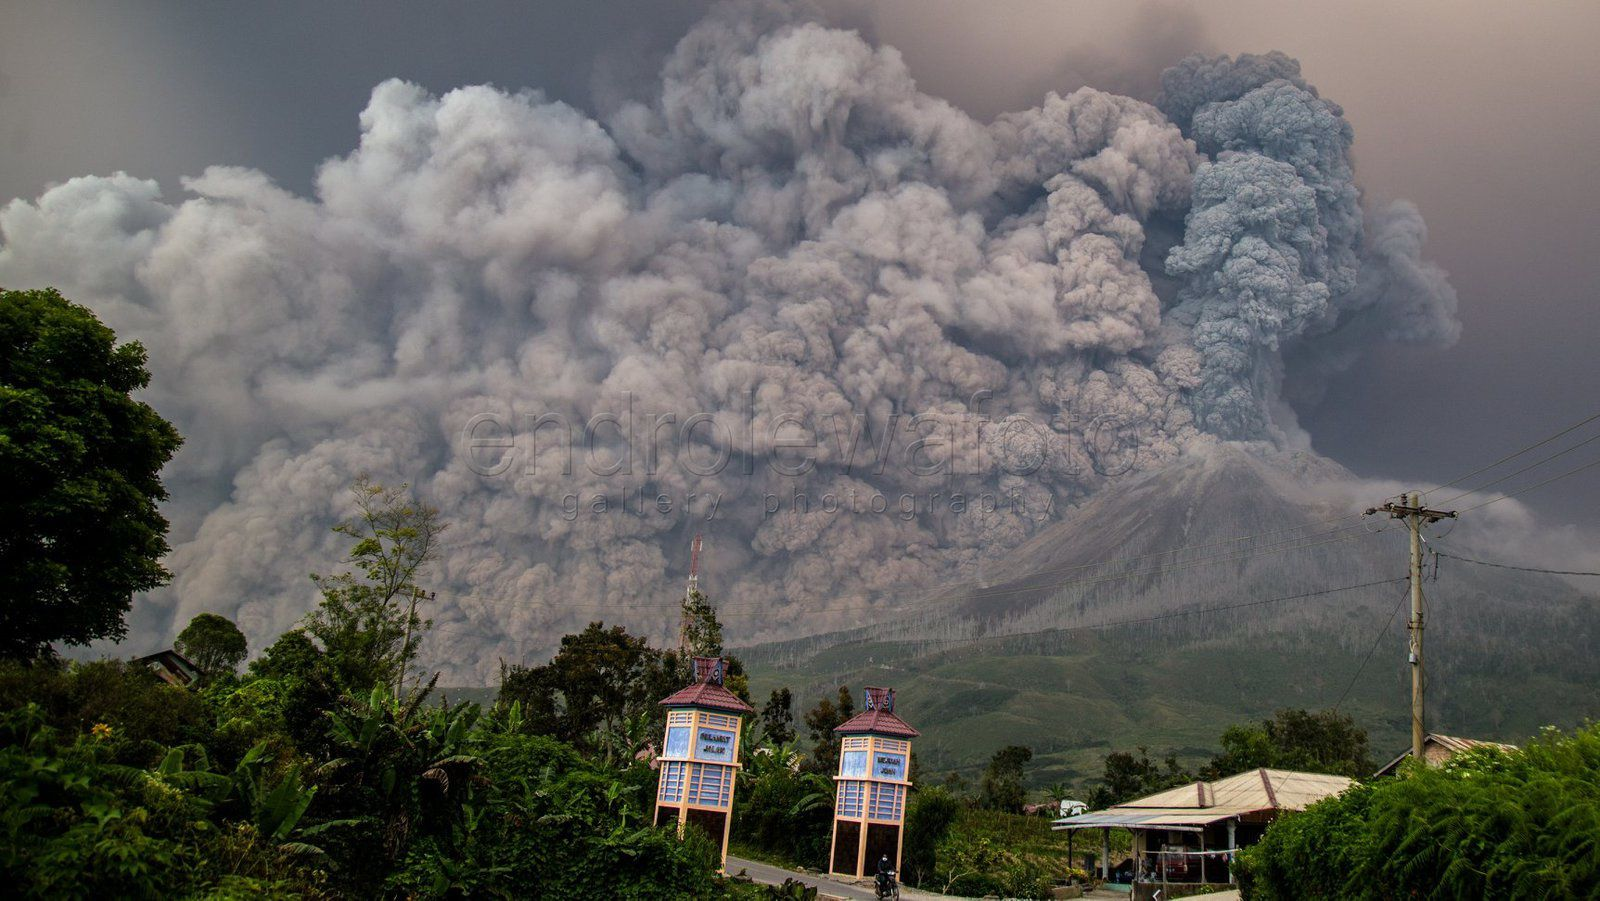 Sinabung - 19.02.2018 - Pyroclastic flows obscure the sky - Photo Endro Lewa